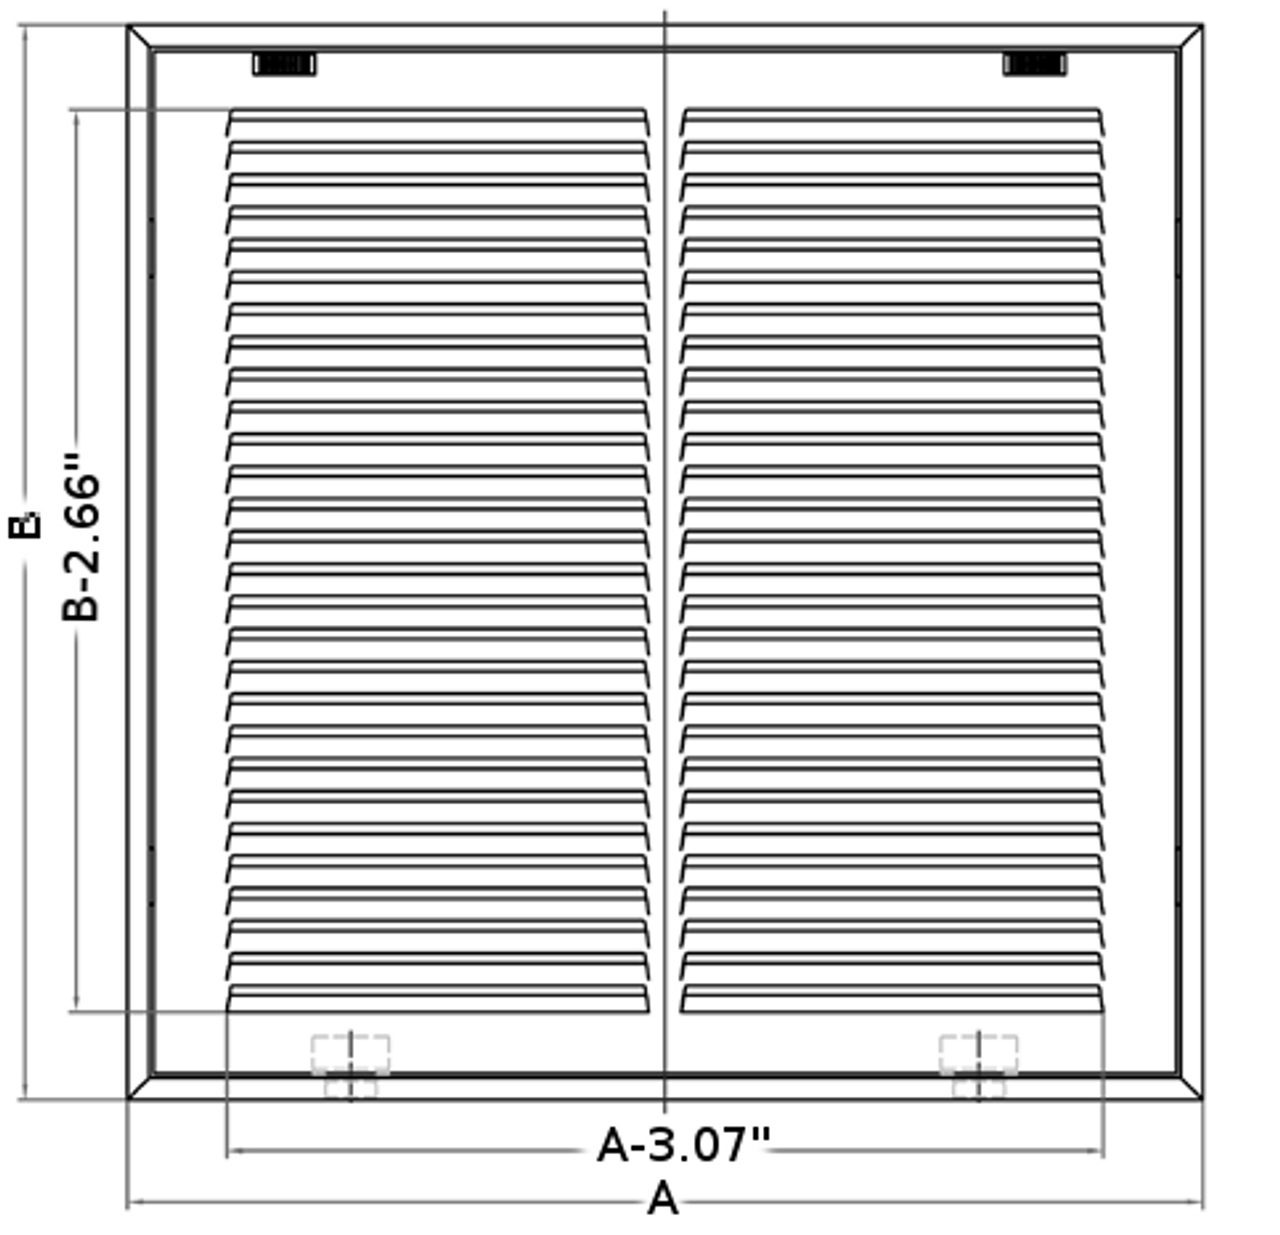 20x20 return air filter grille stamped front dimensions